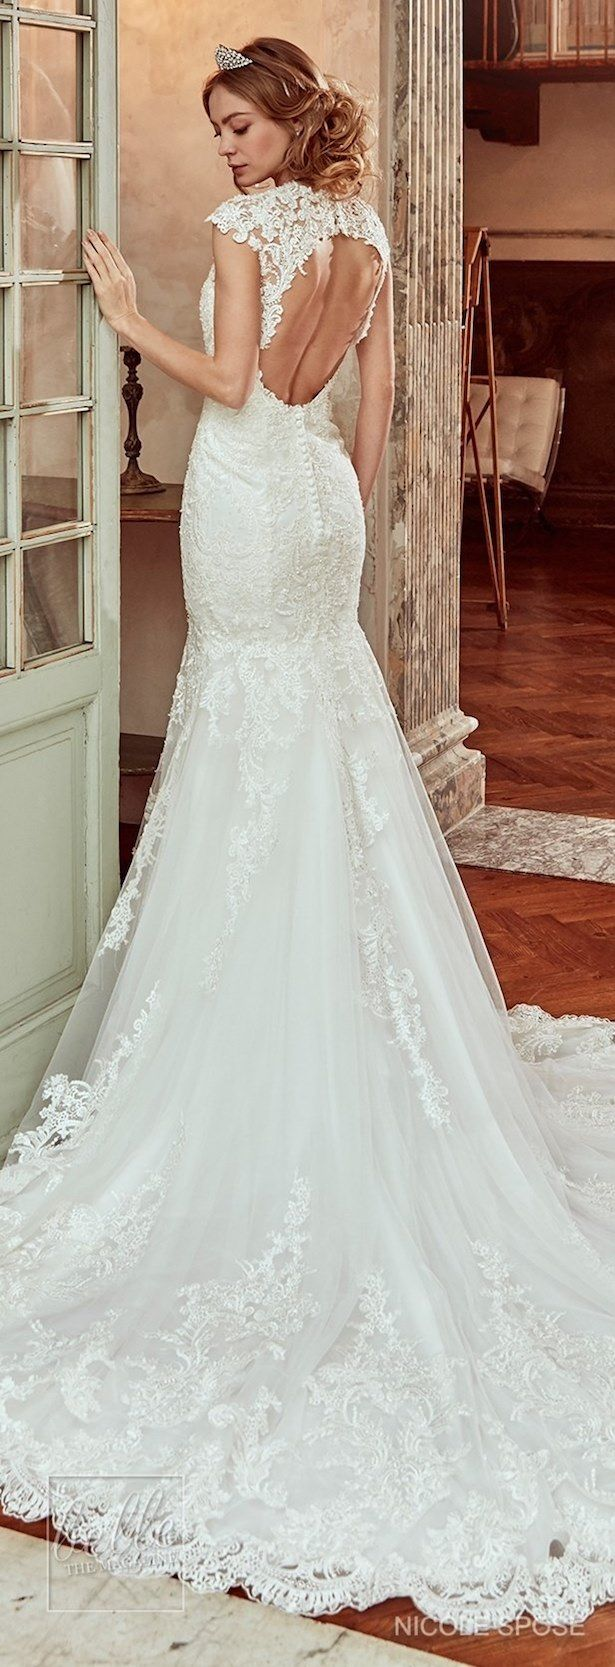 Nicole spose wedding dress collection part i wedding